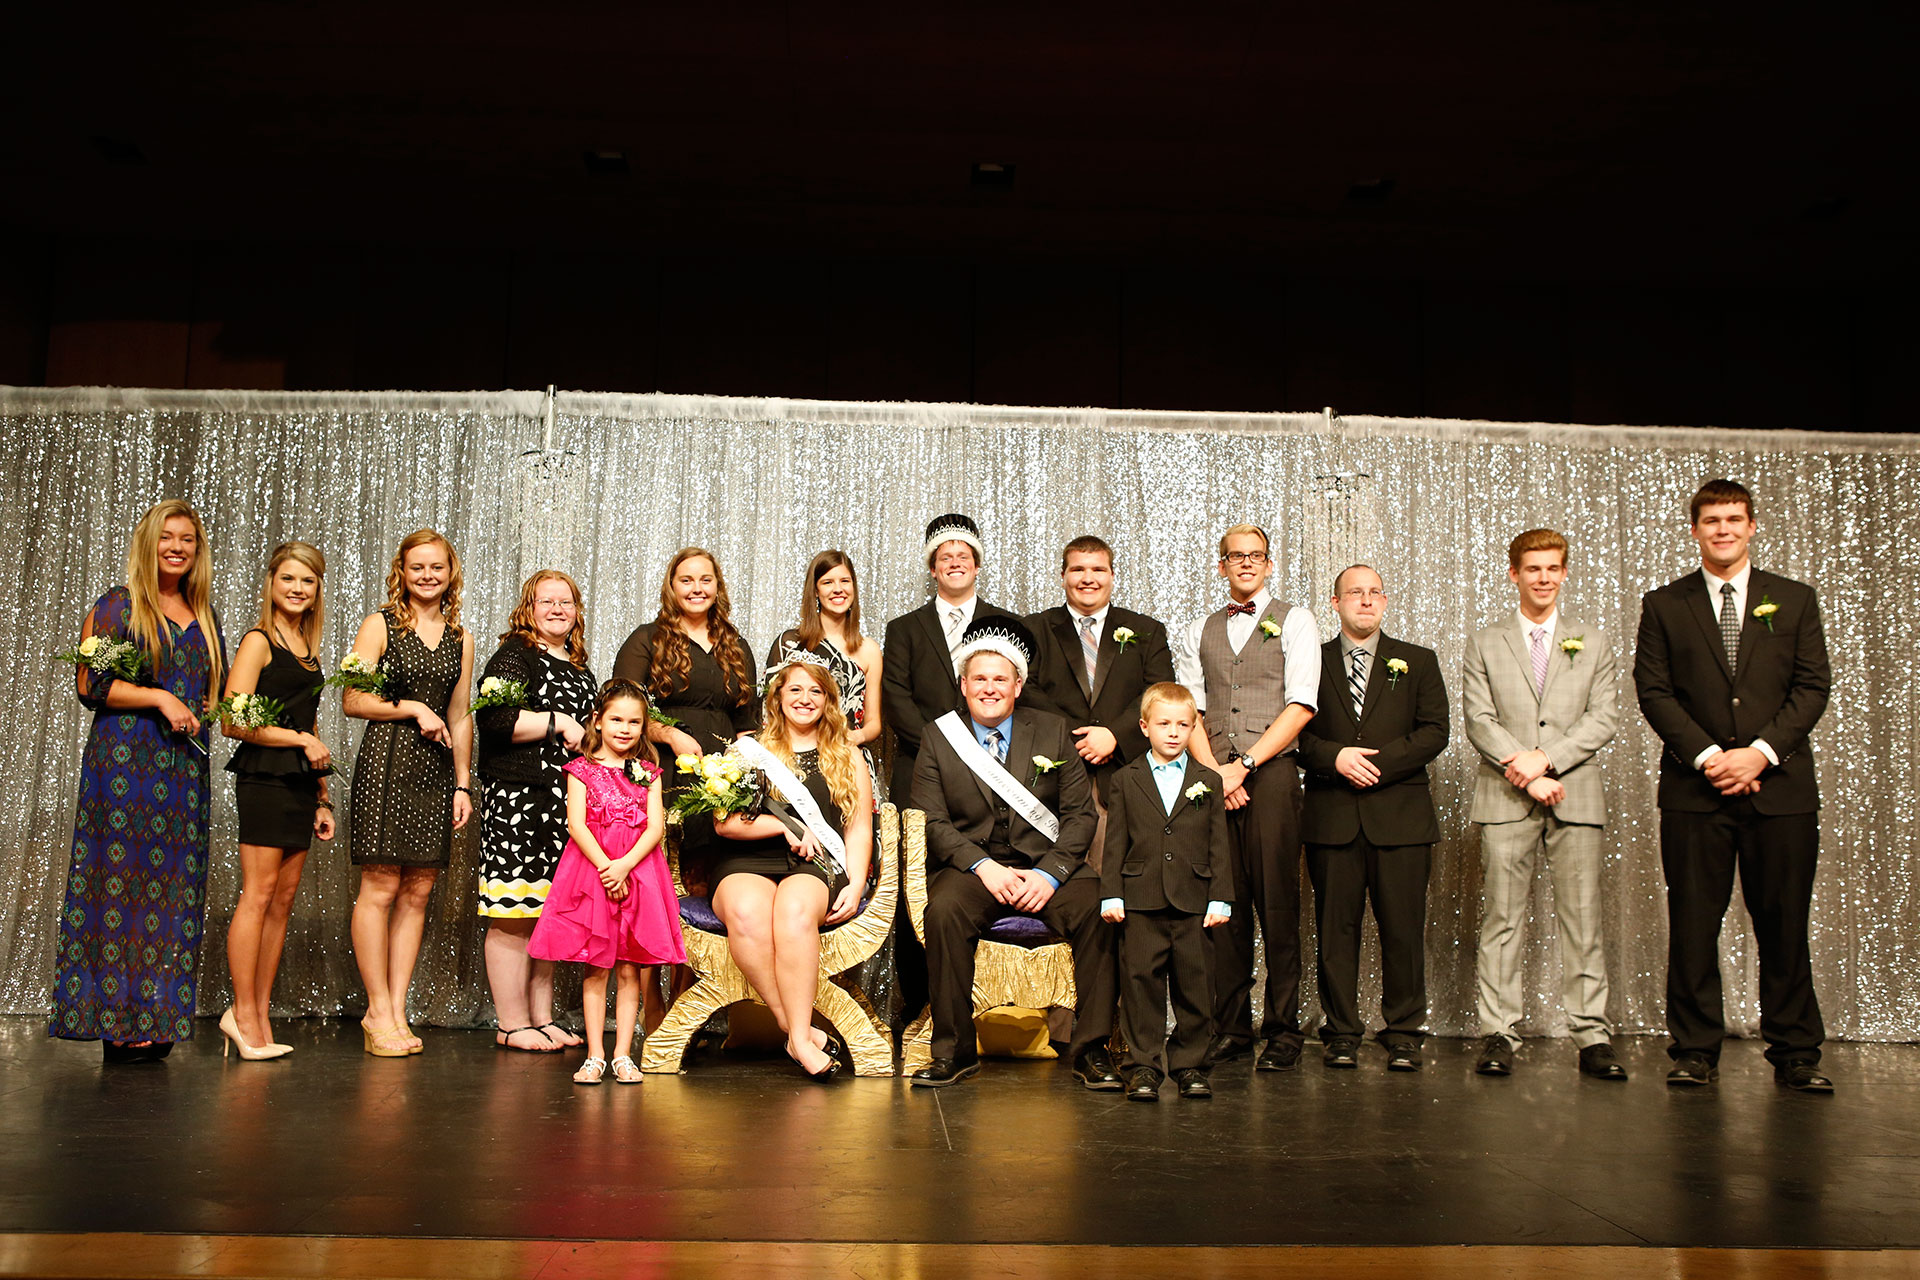 WSC Homecoming coronation 2014